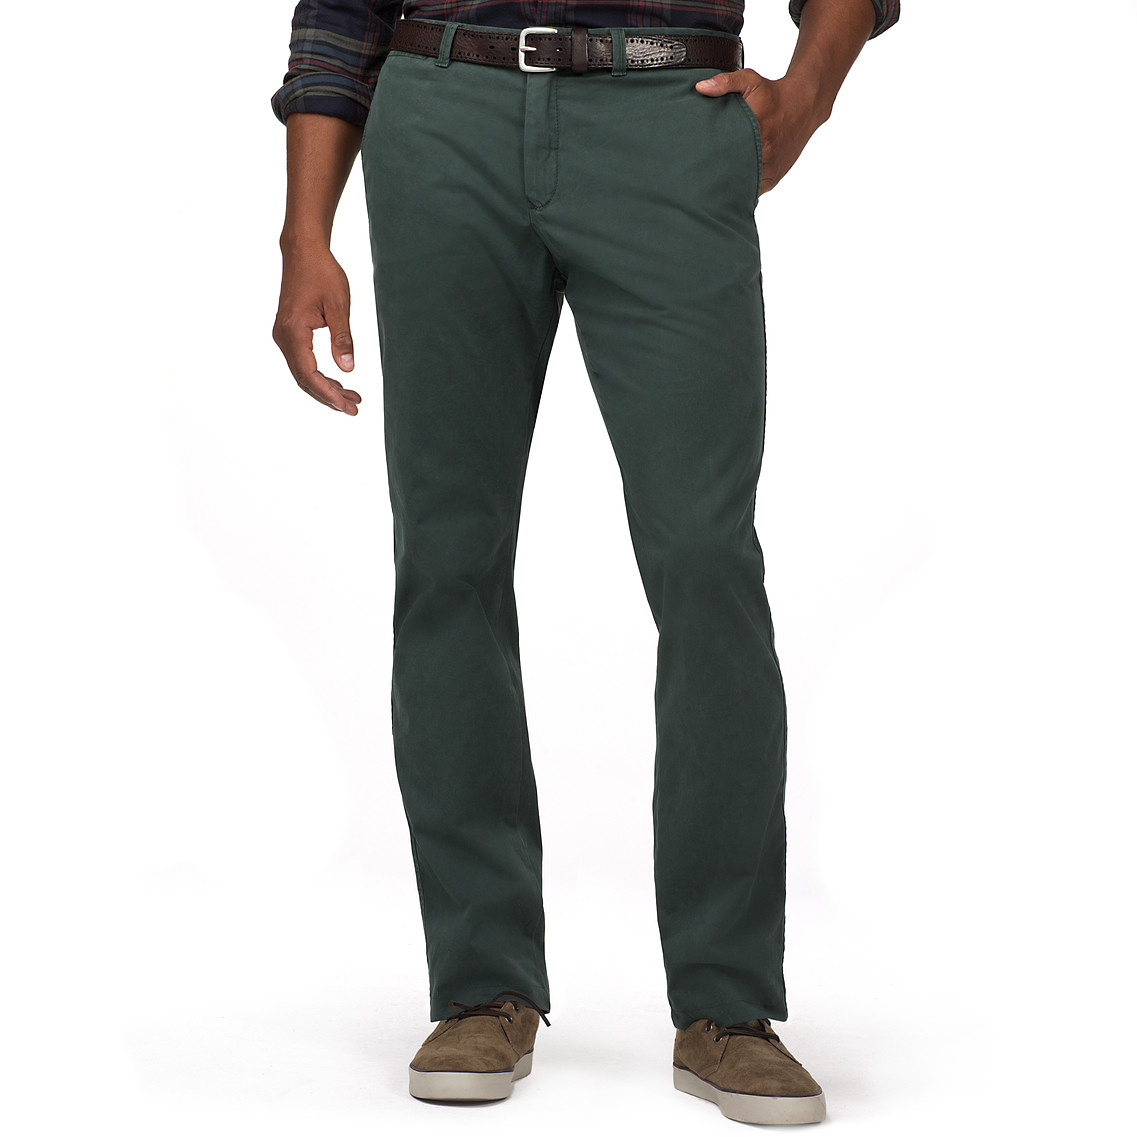 tommy hilfiger hilfiger straight fit chino in green for. Black Bedroom Furniture Sets. Home Design Ideas